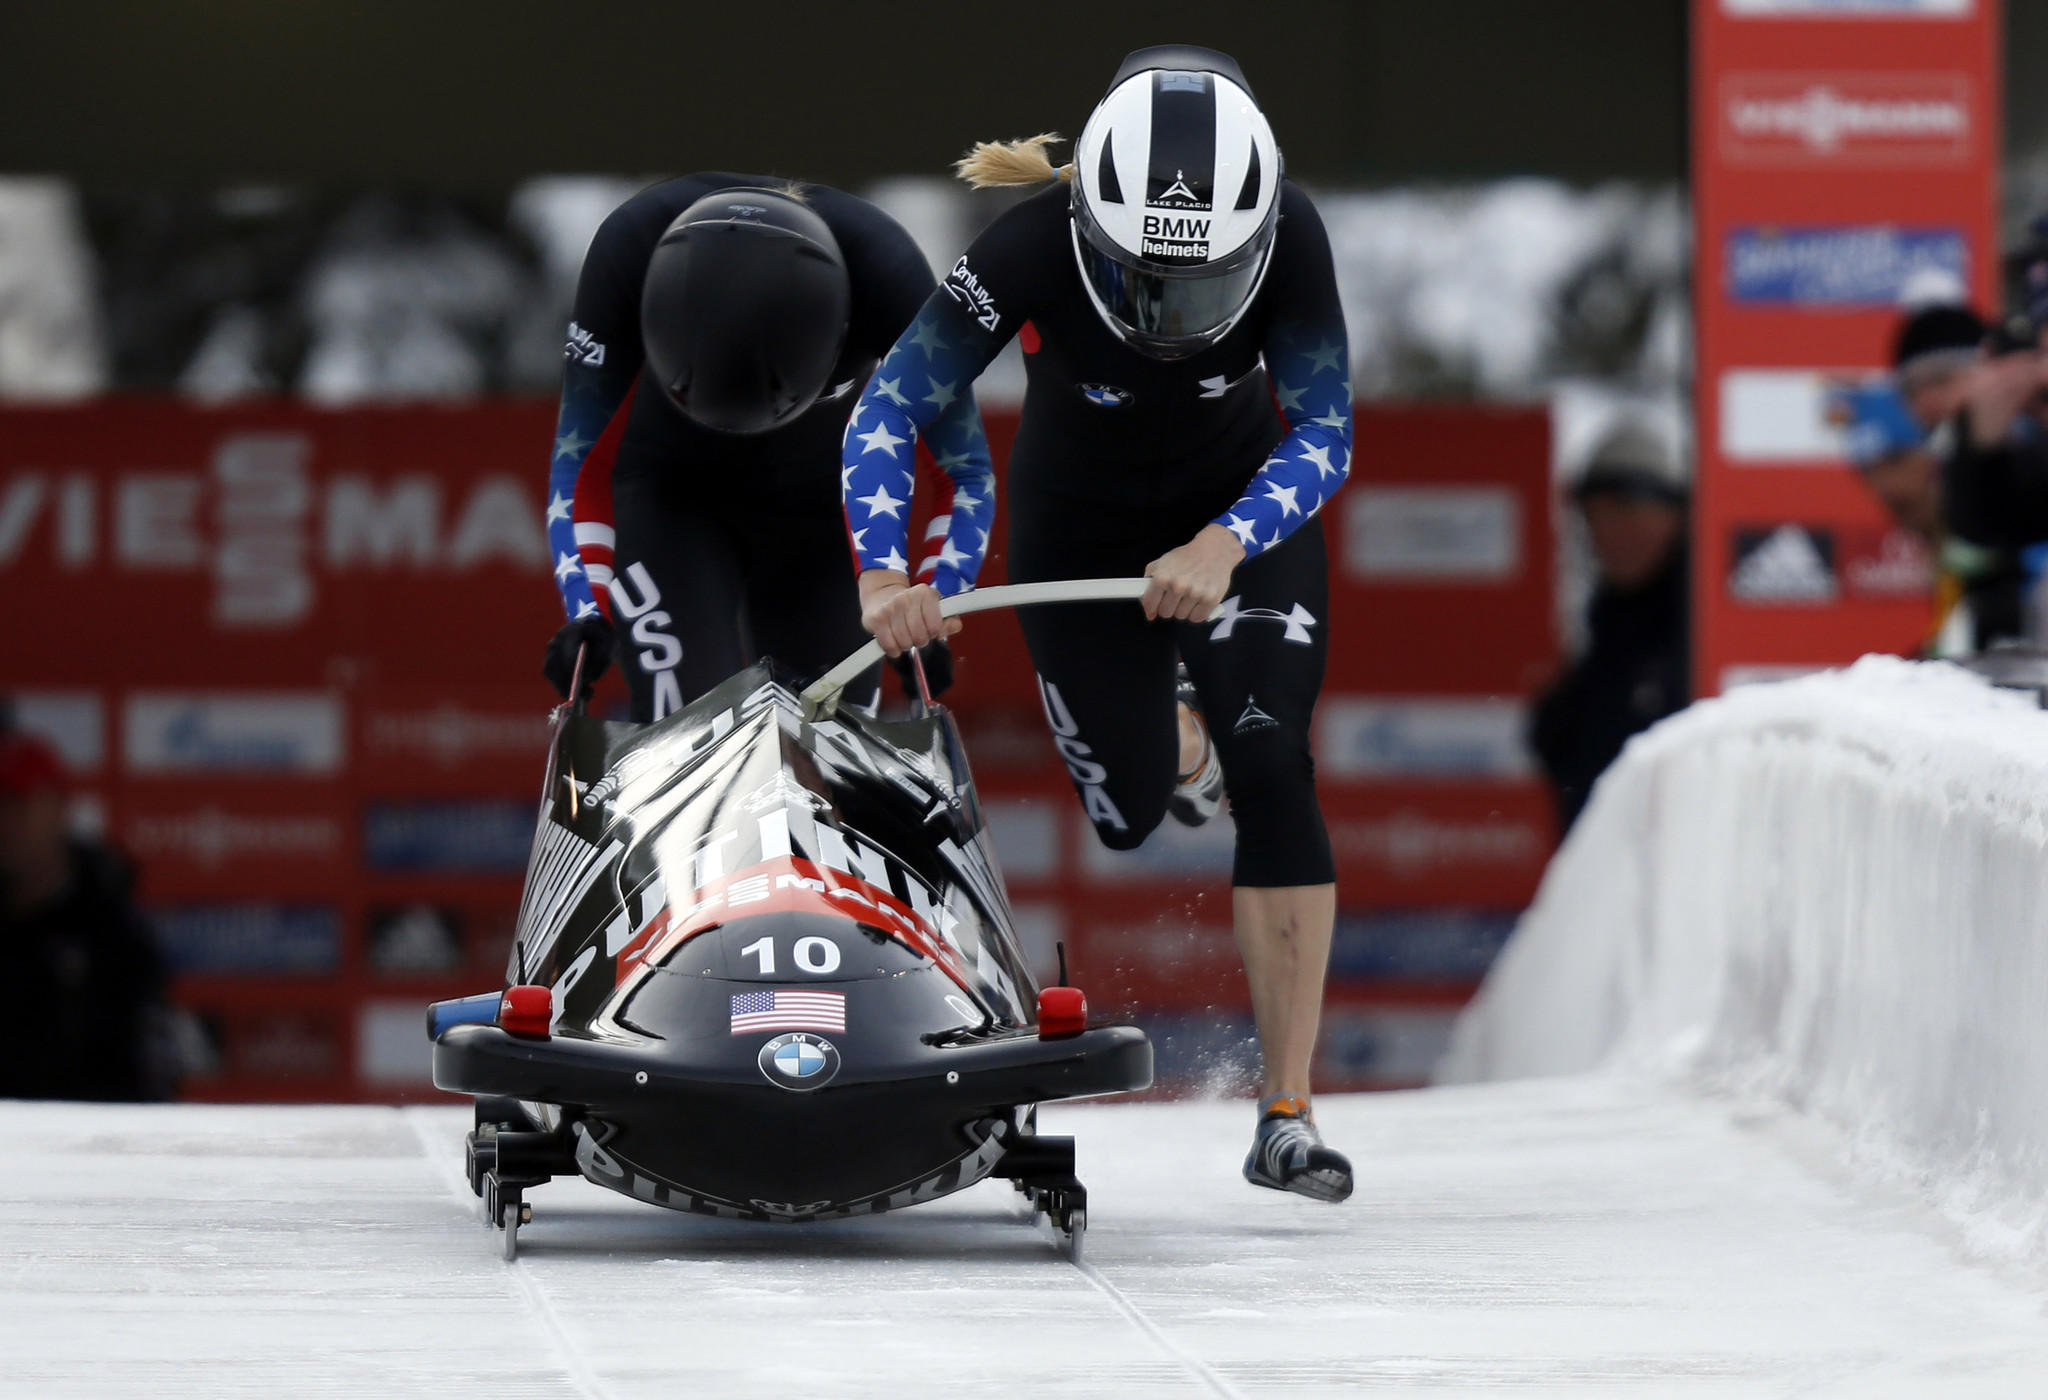 Third place finishers Jamie Greubel and Katie Eberling of the United States during the IBSF women's bobsleigh World Cup at Utah Olympic Park.